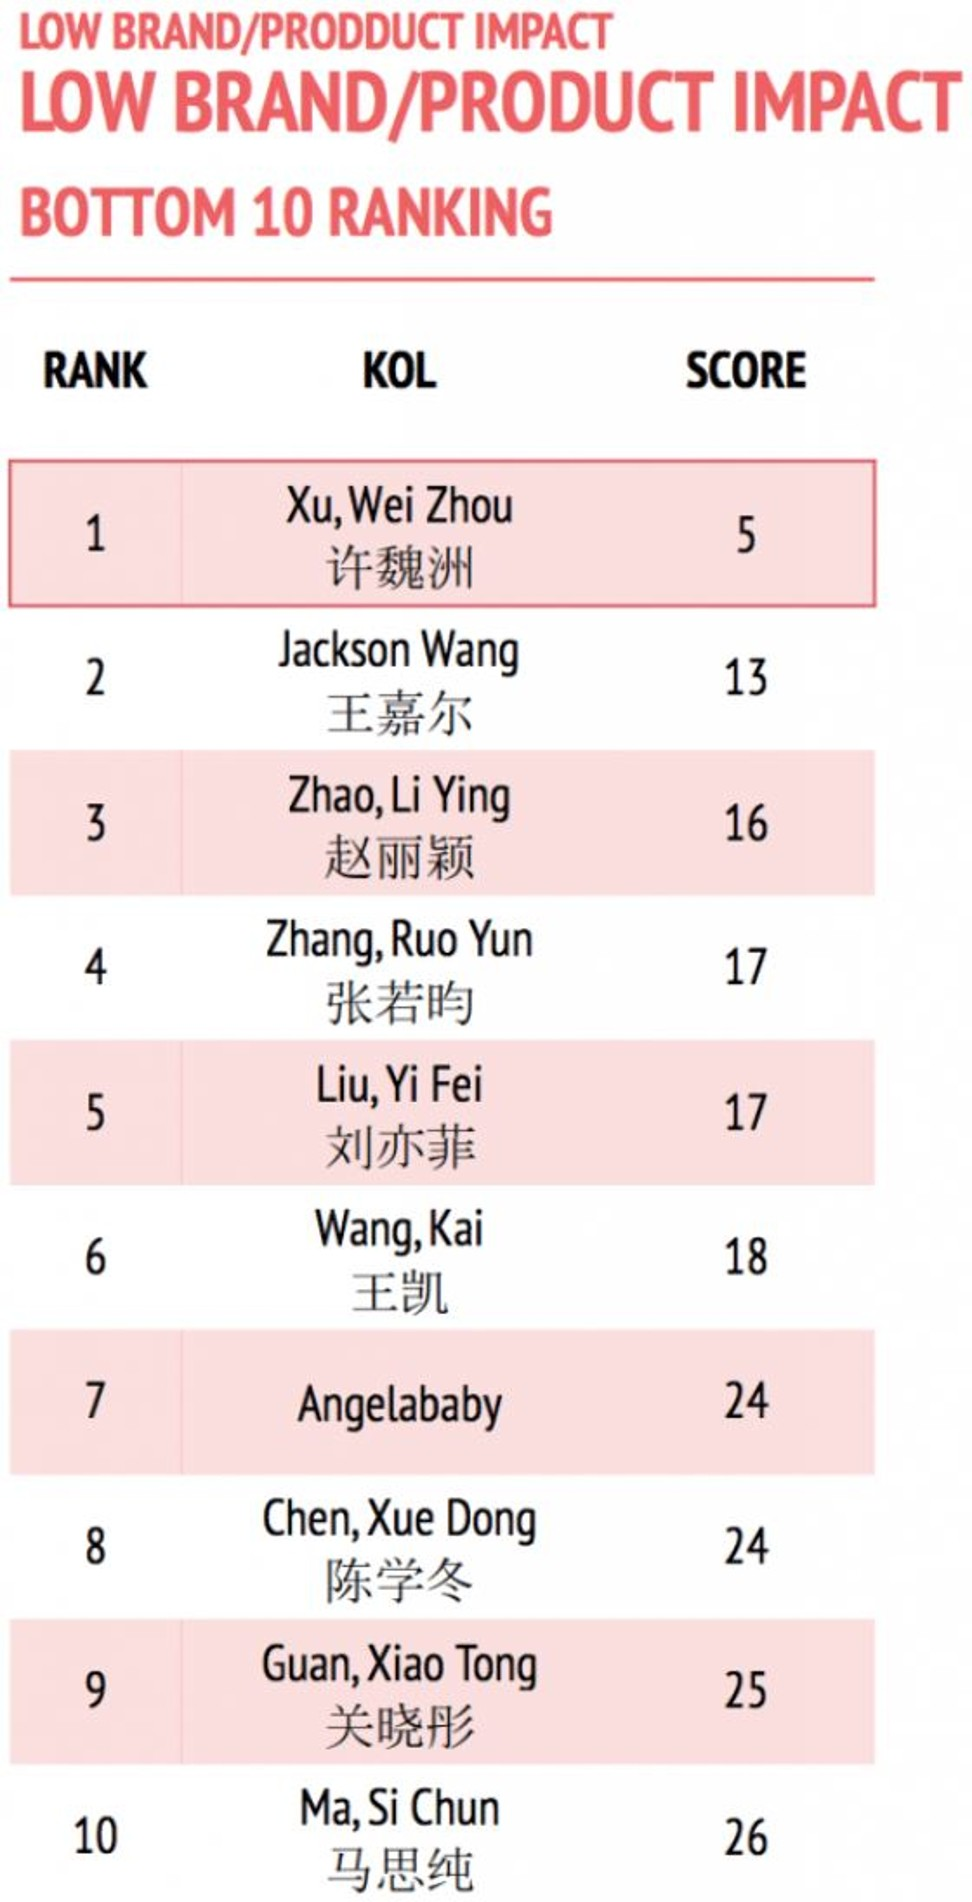 Who are China's top influencers and key opinion leaders by